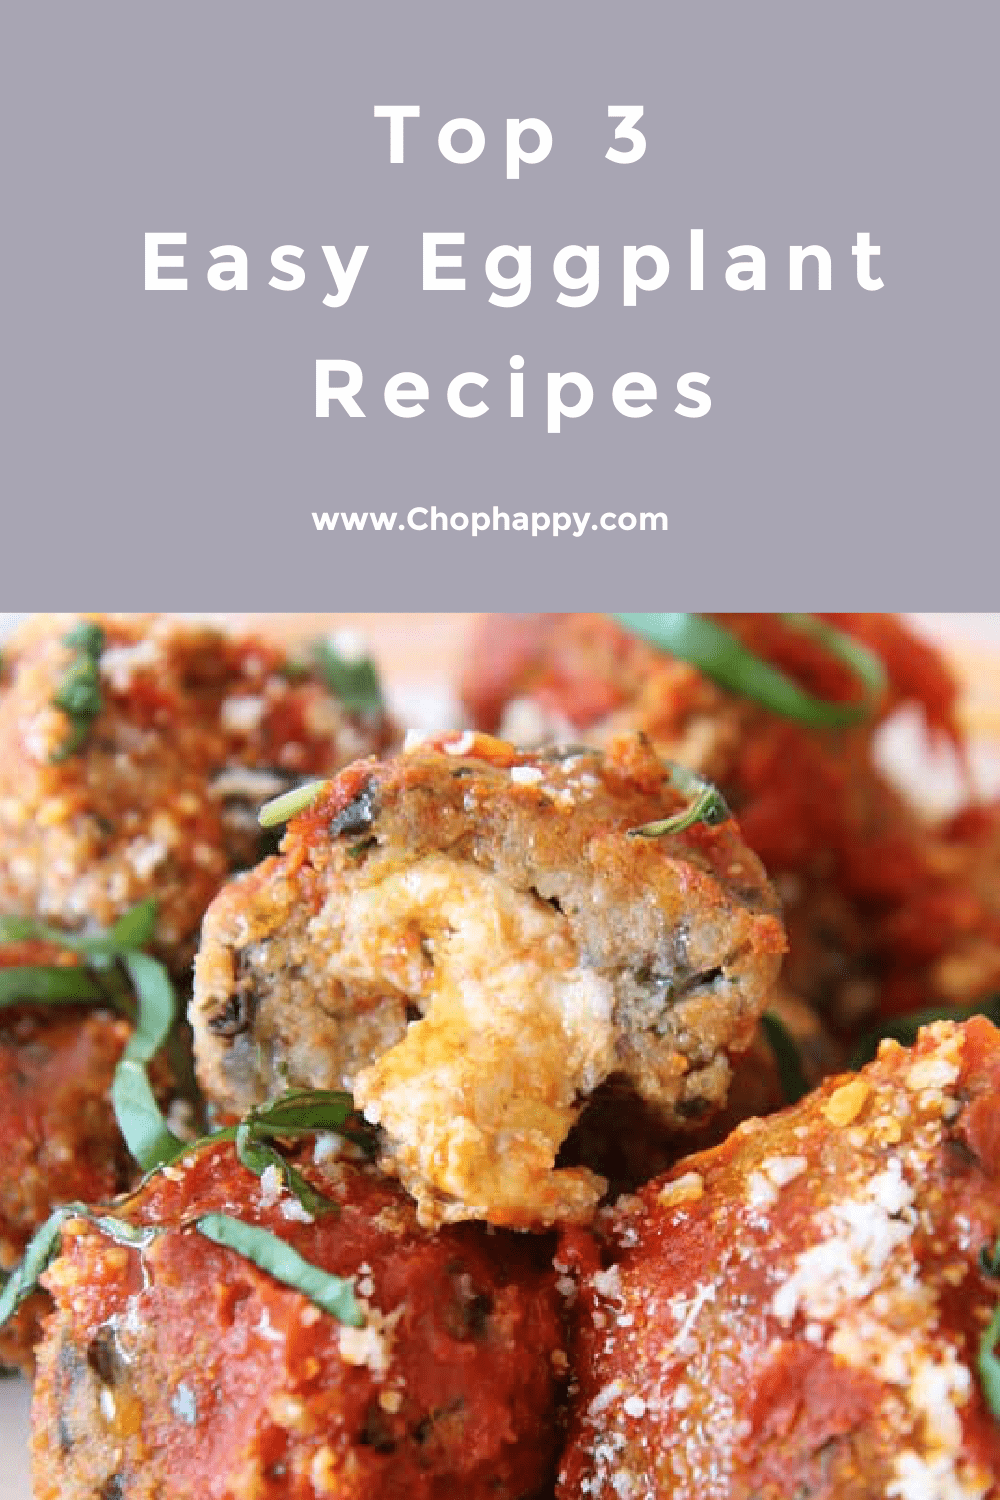 Top 3 Easy Ways To Make Eggplant Recipes. Eggplant is a versatile ingredient for busy weeknight dinners and lots of leftovers. Happy Cooking! www.ChopHappy.com #eggplantrecipes #eggplant